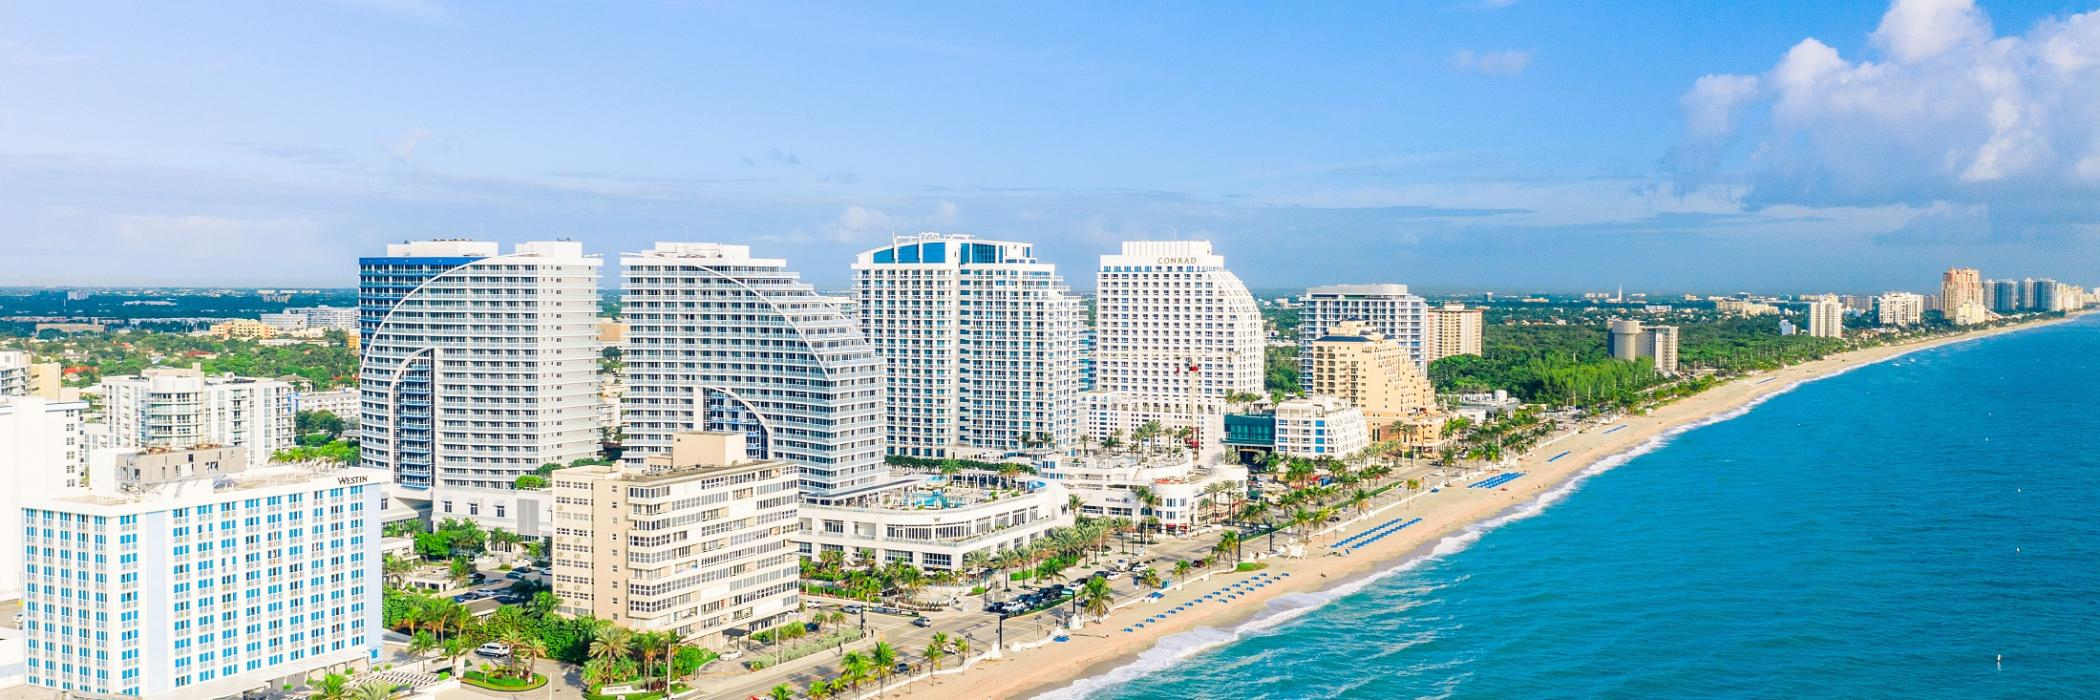 Aerial view of Fort Lauderdale beach hotels taken from over the Atlantic Ocean